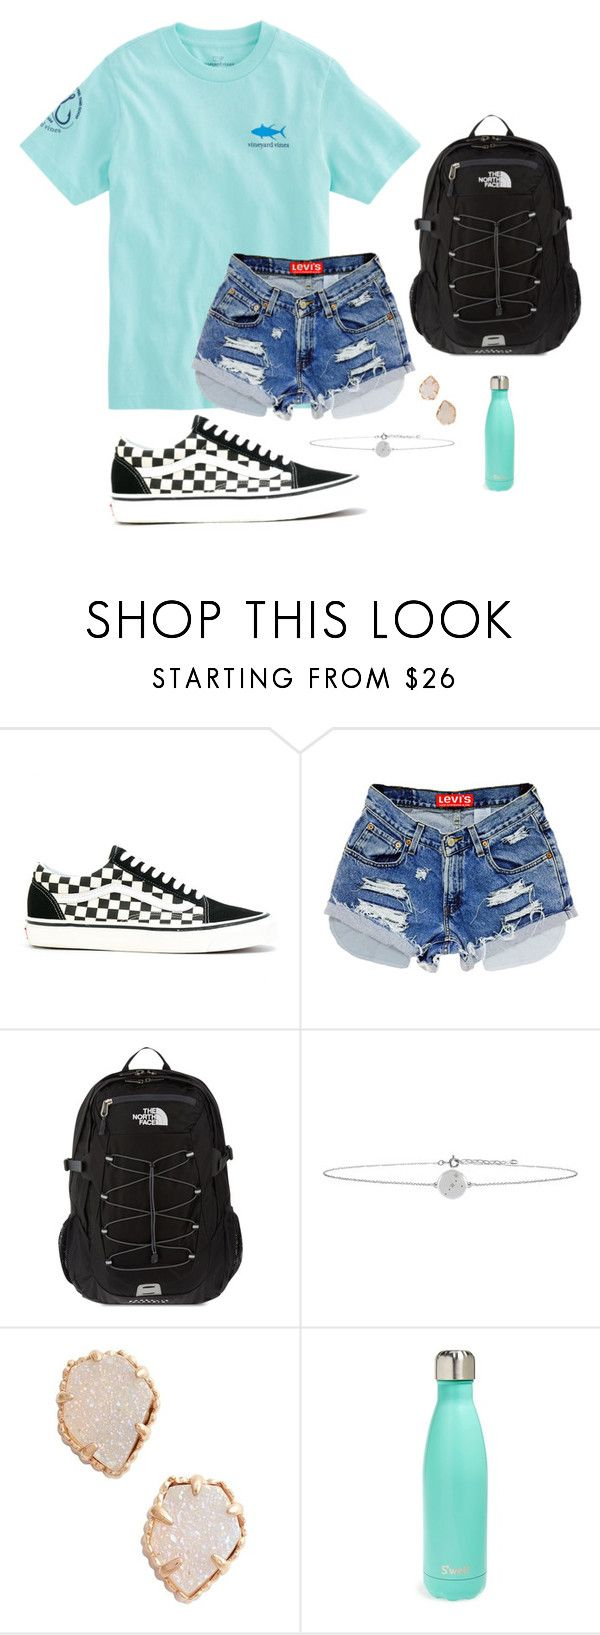 """""""school"""" by nbrooke1009 on Polyvore featuring Vans, Vineyard Vines, The North Face, No 13, Kendra Scott and S'well"""